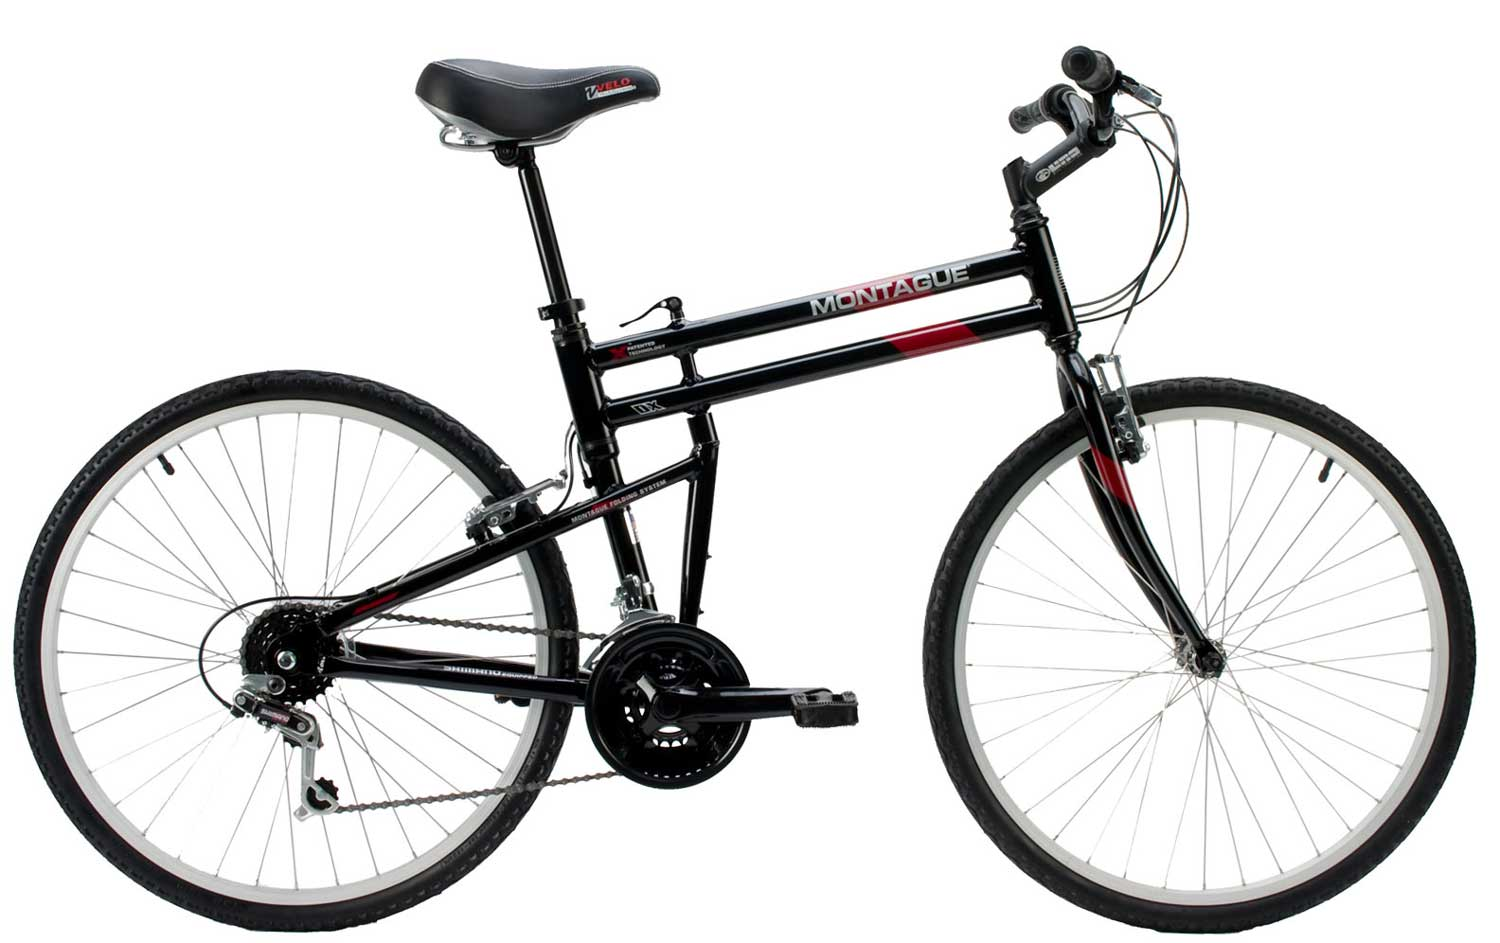 2008 DX Crossover Folding Bike